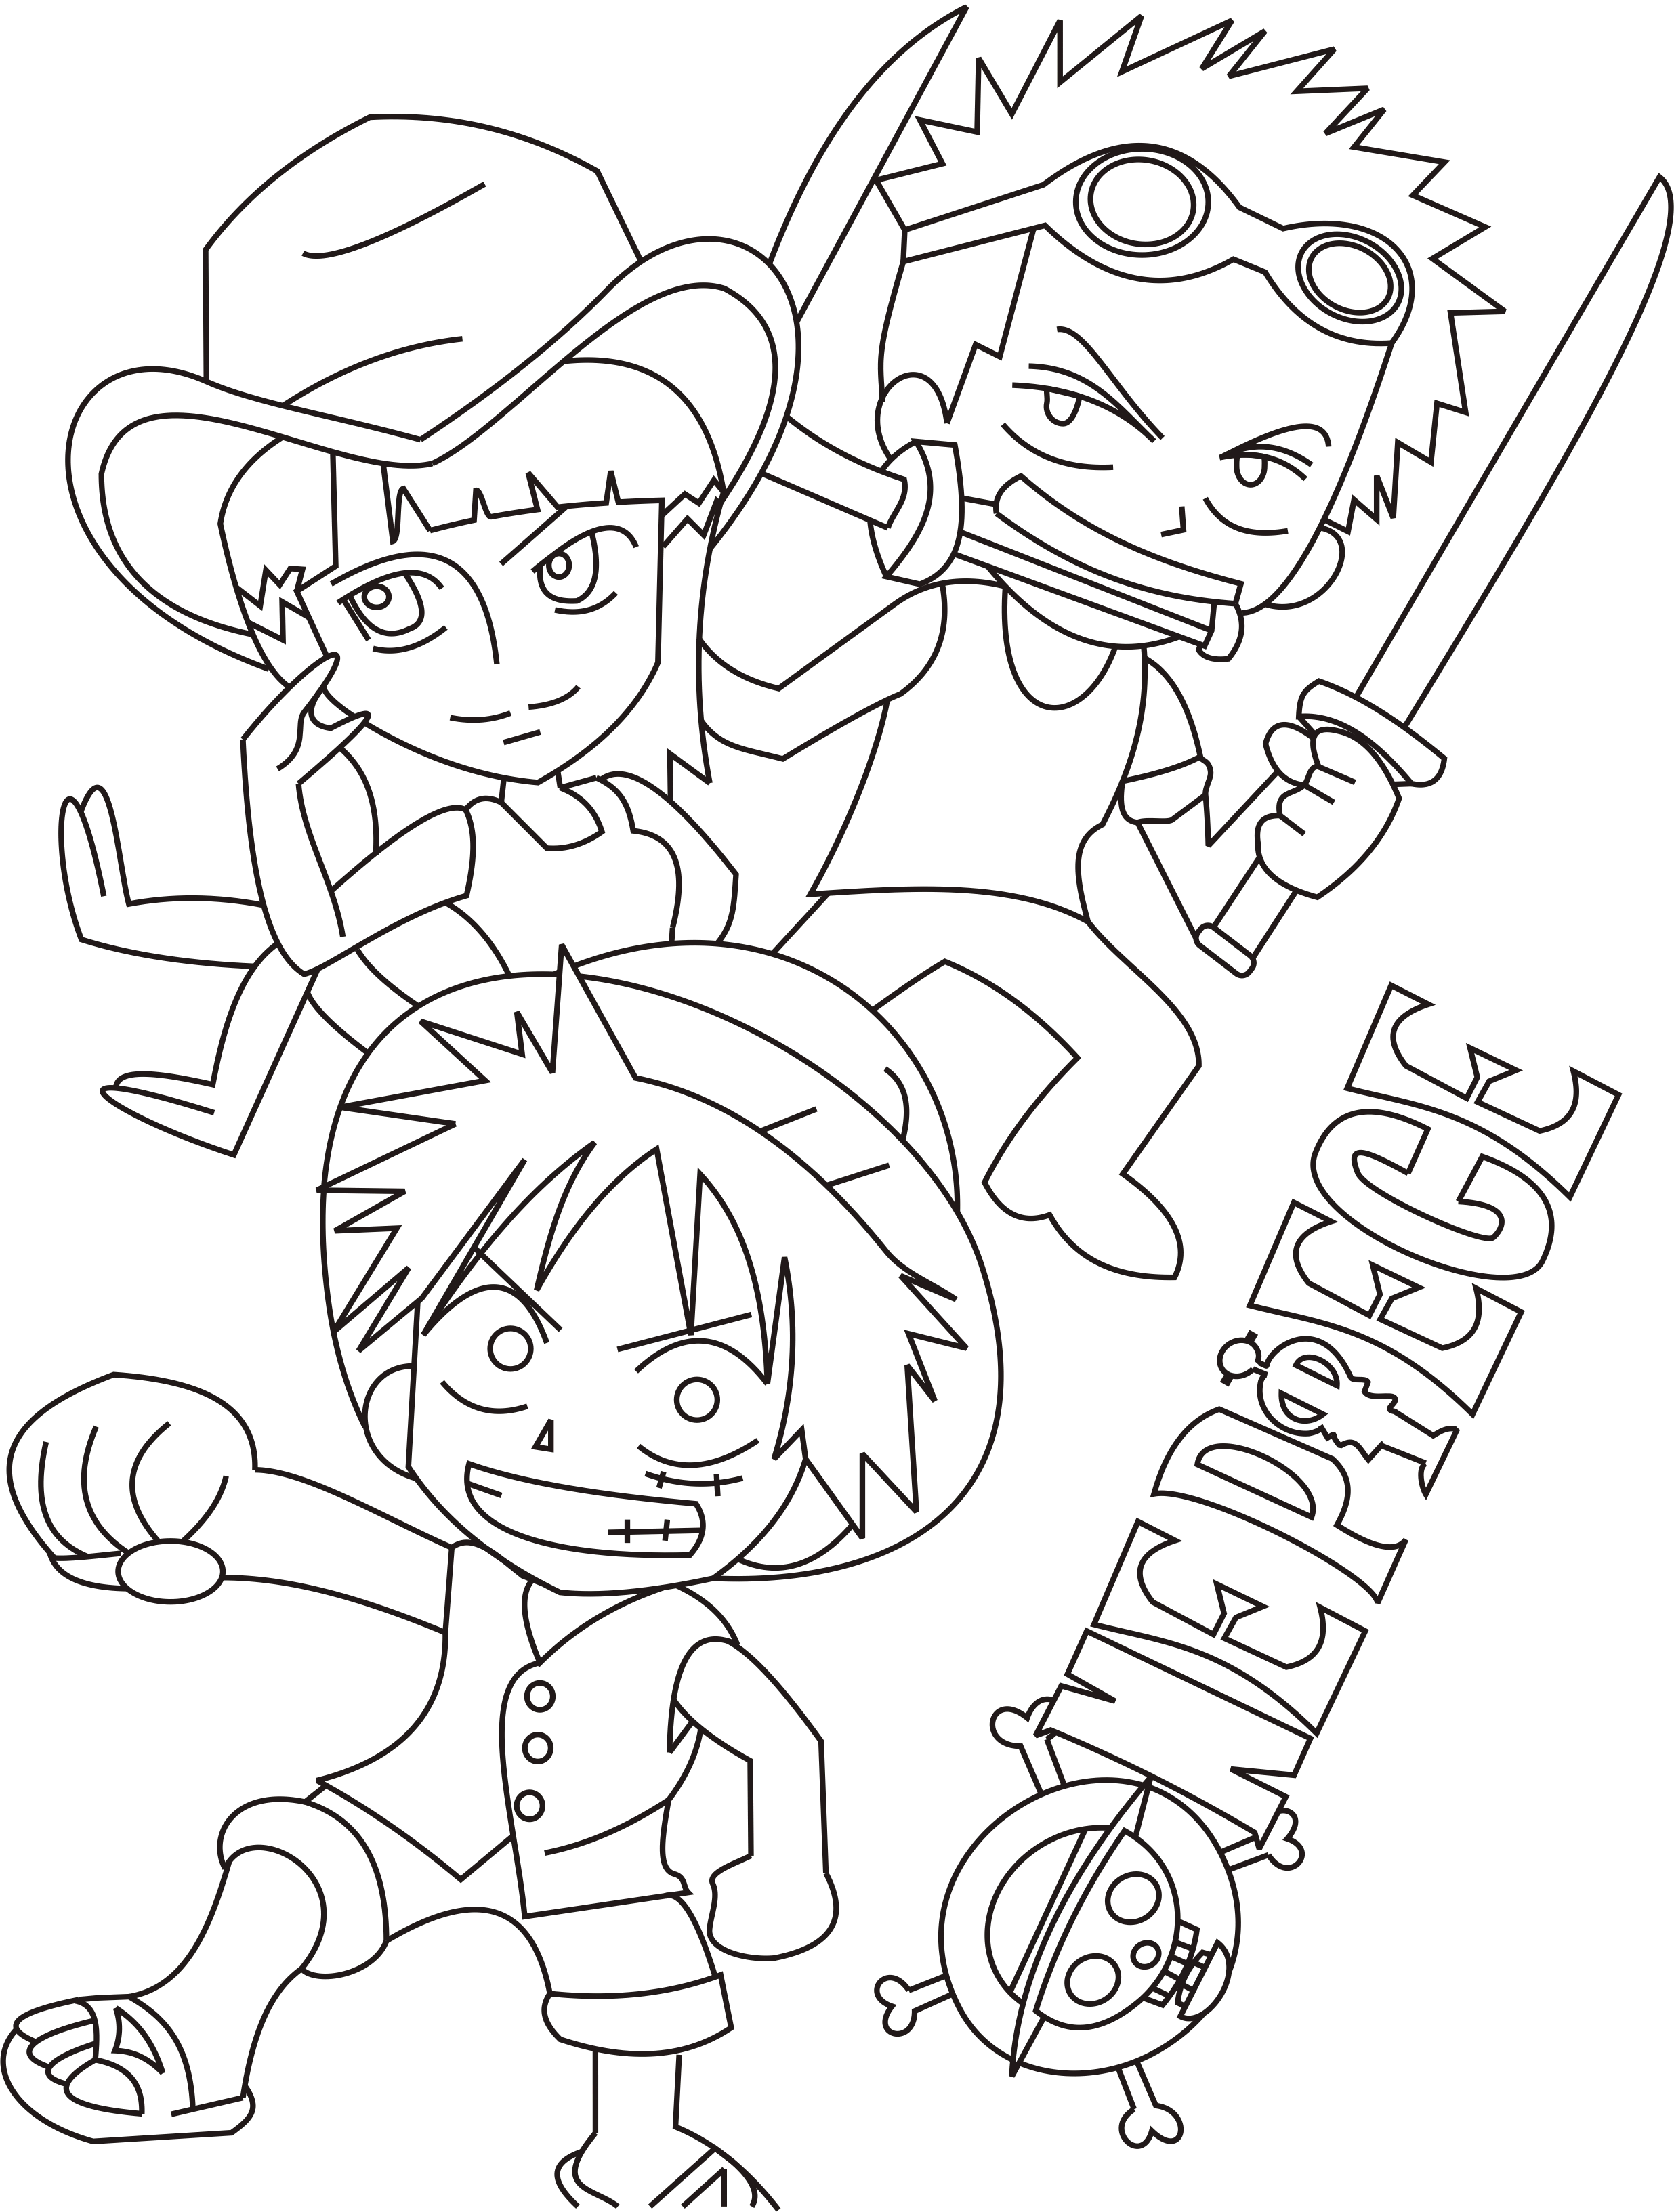 Dibujos de one piece para colorear for One piece dibujos